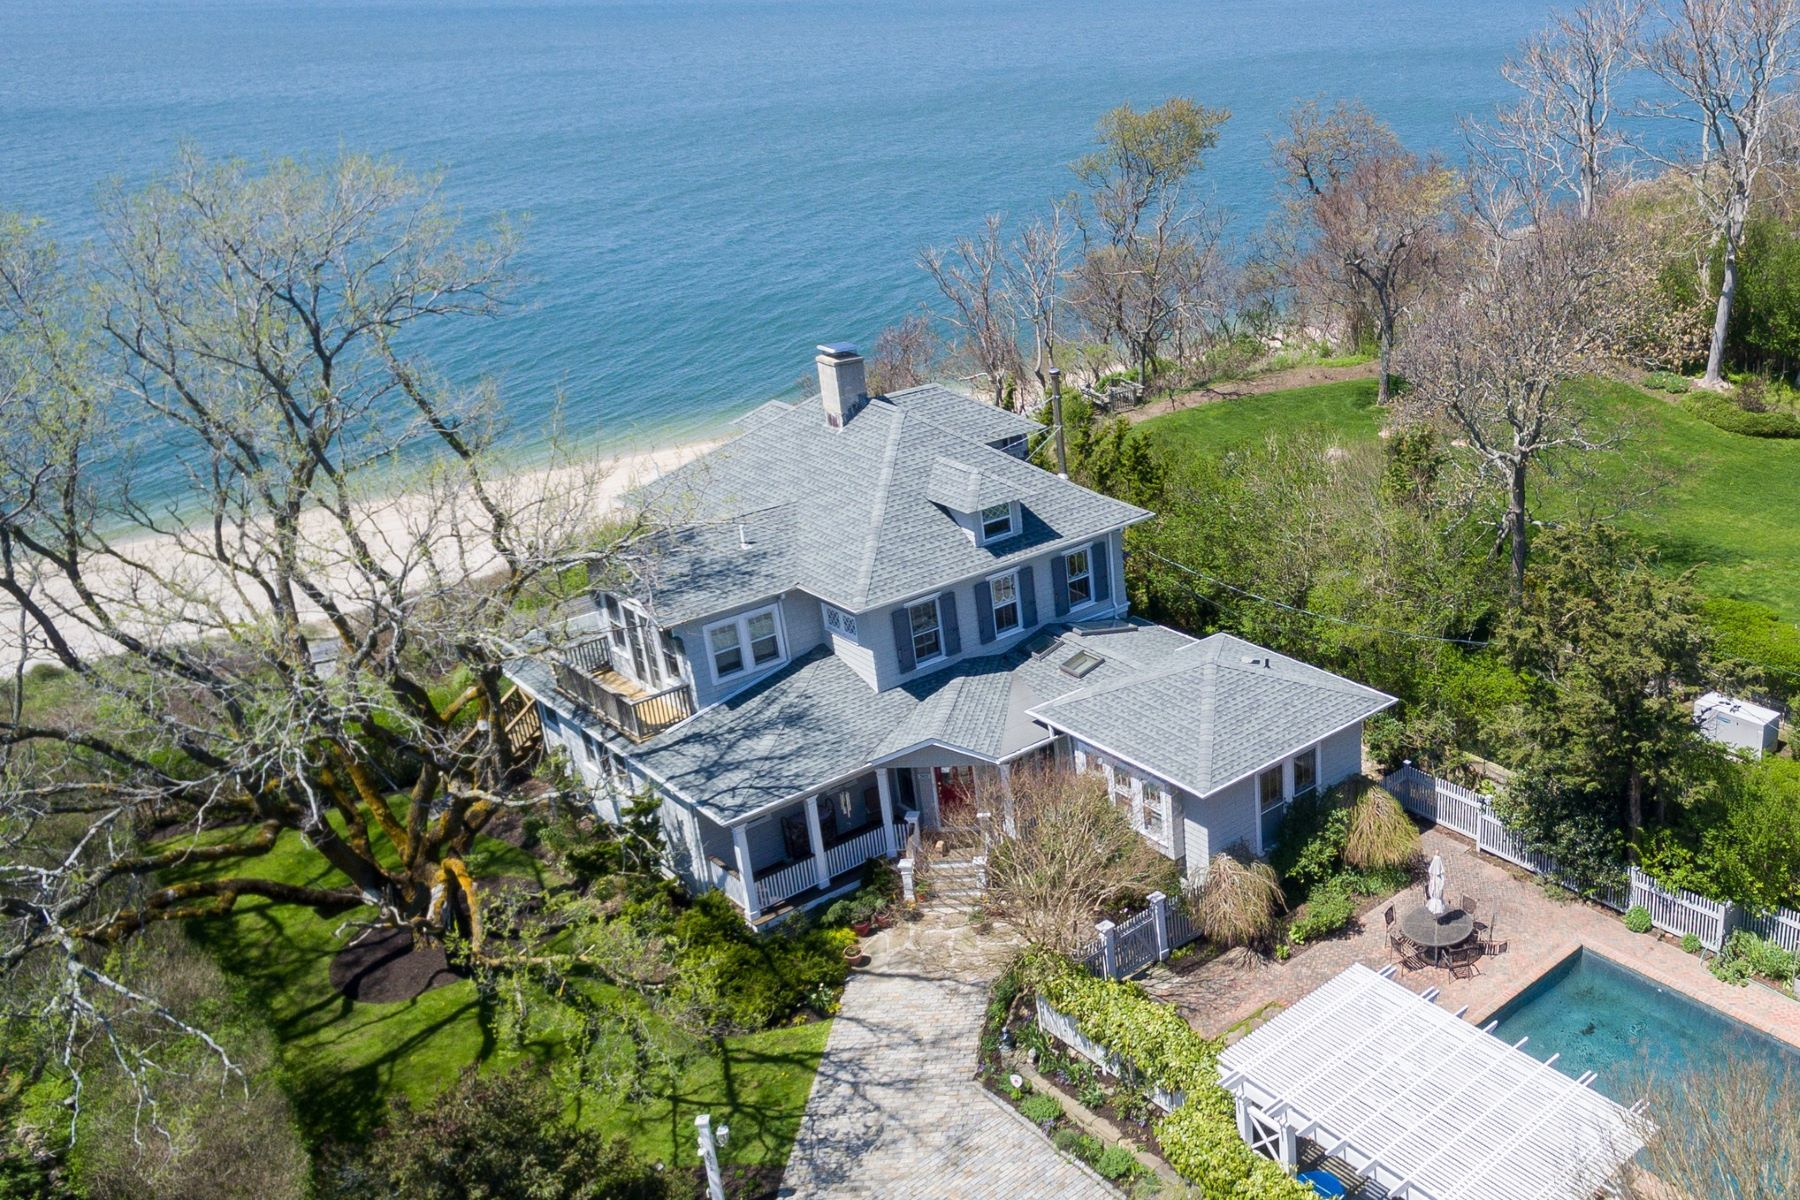 Single Family Home for Active at Southold 2022 Hyatt Rd Southold, New York 11971 United States